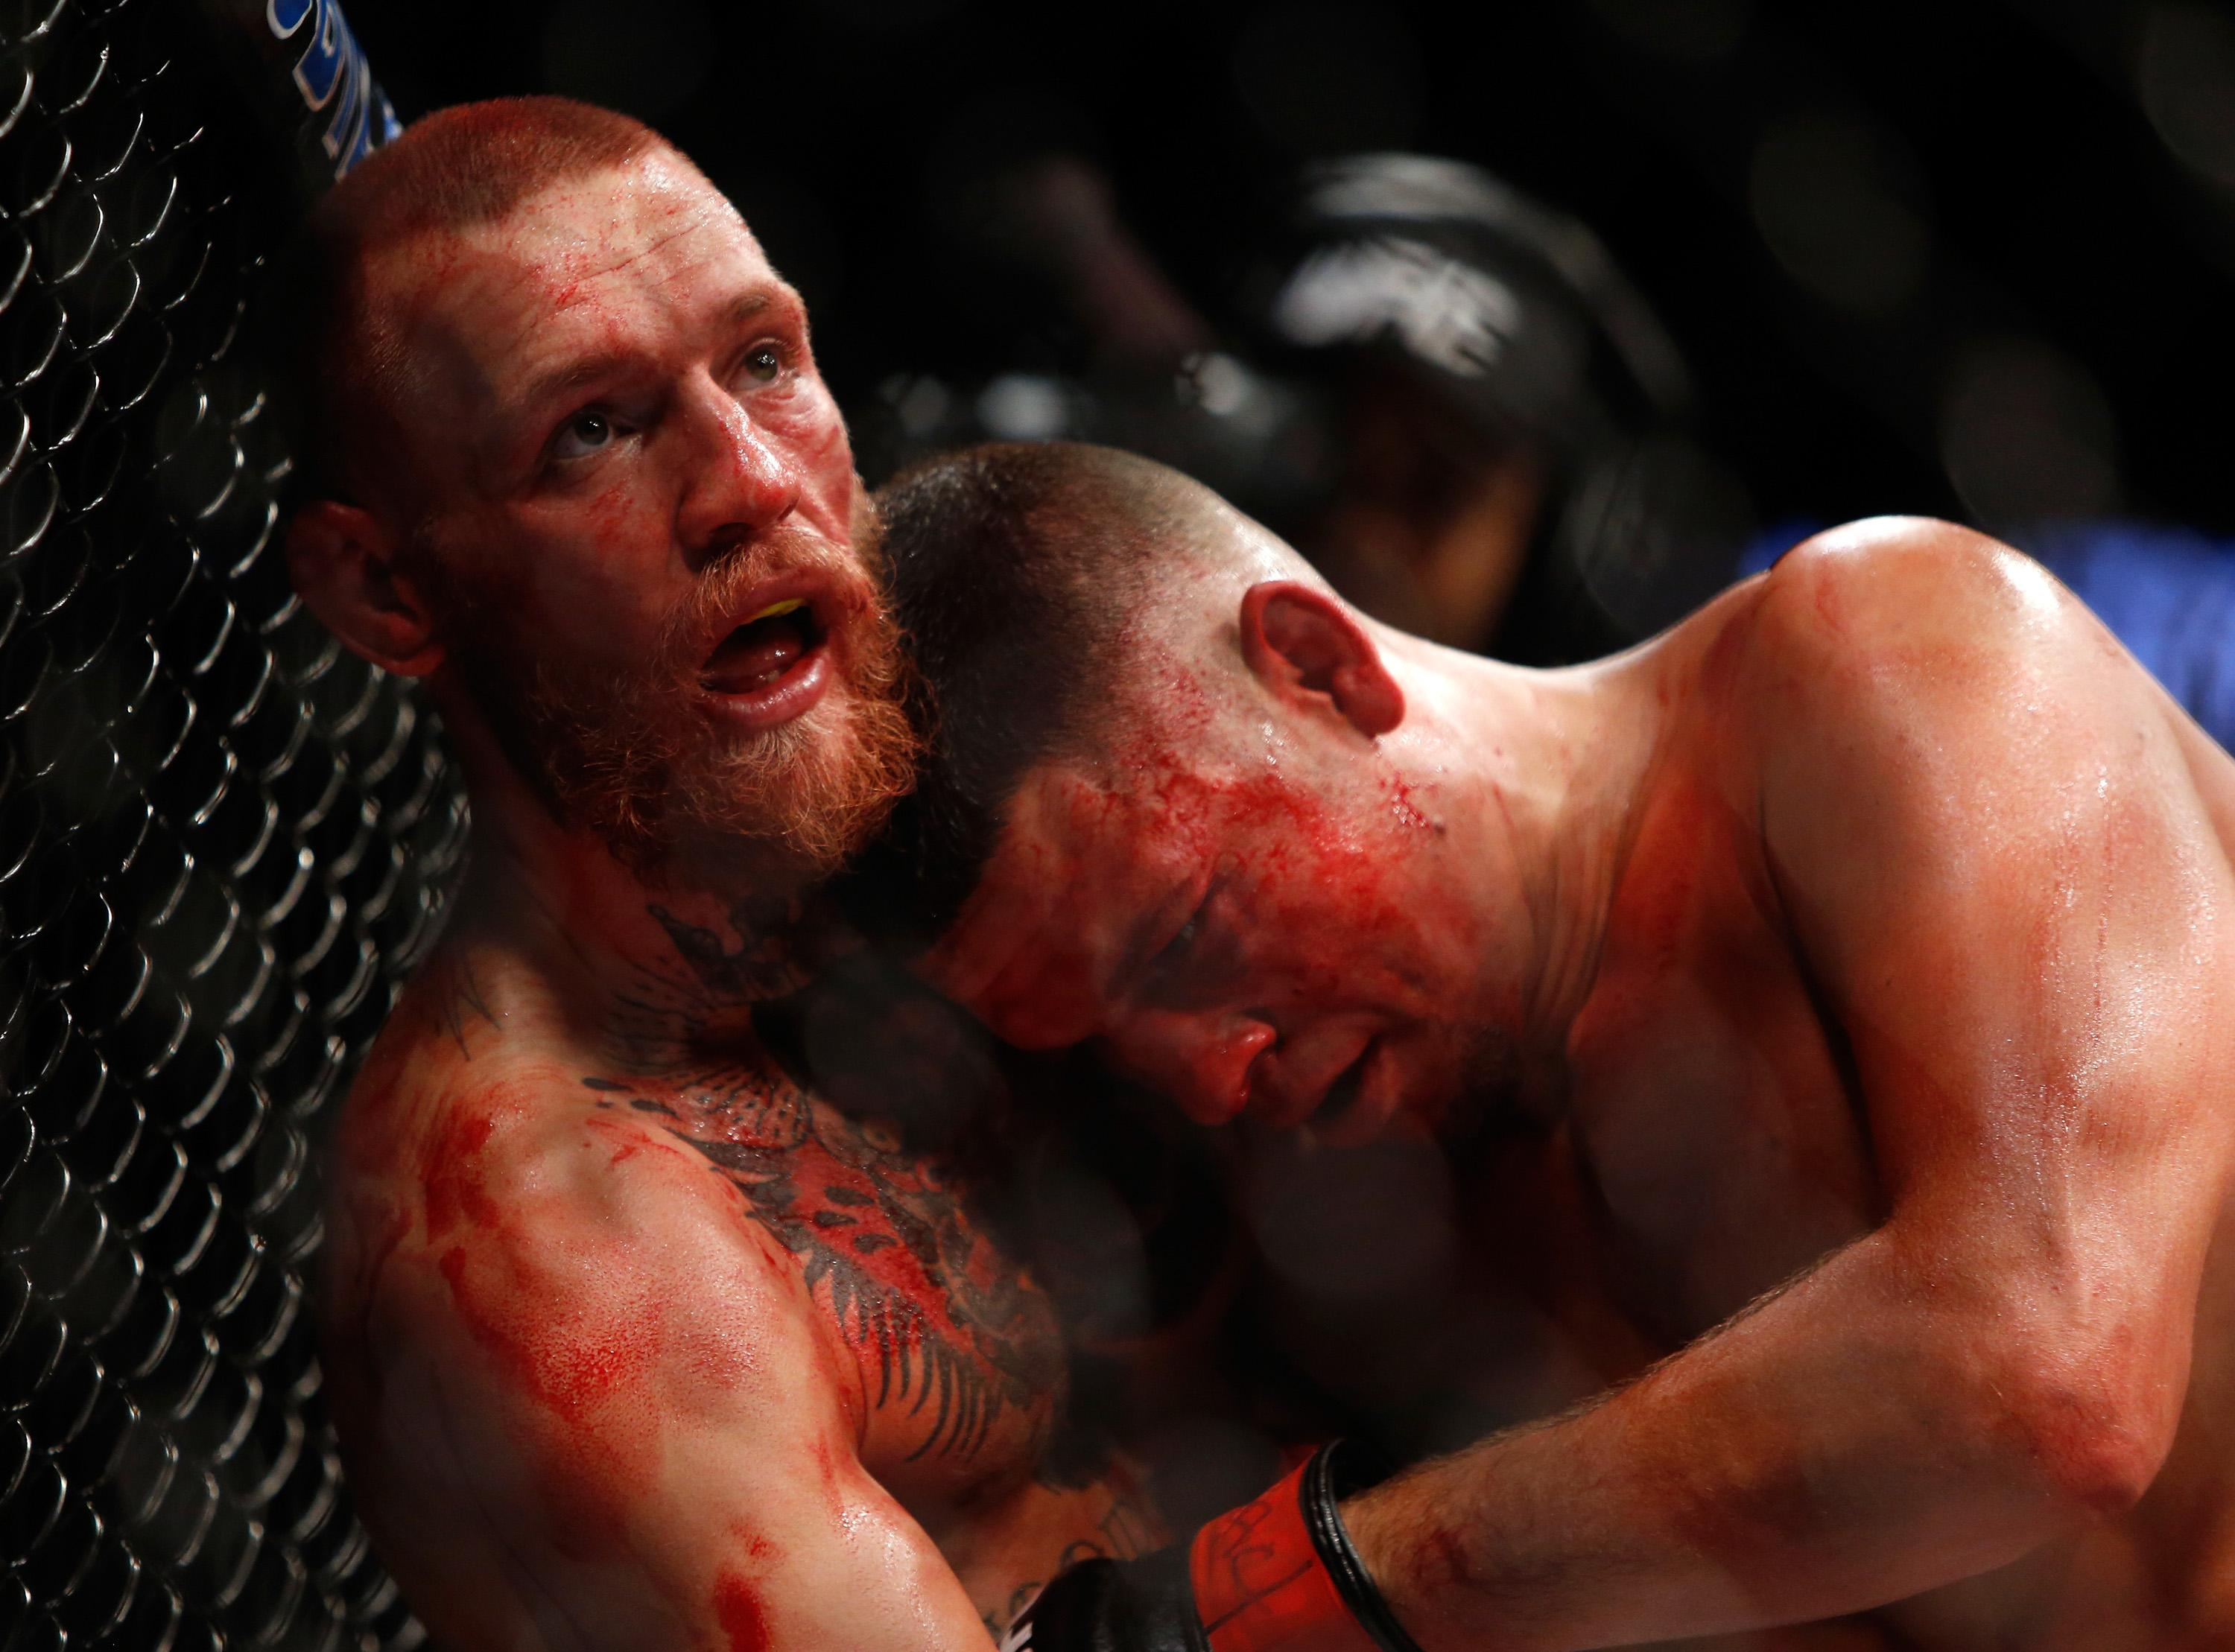 Will Conor McGregor and Nate Diaz have a third fight?